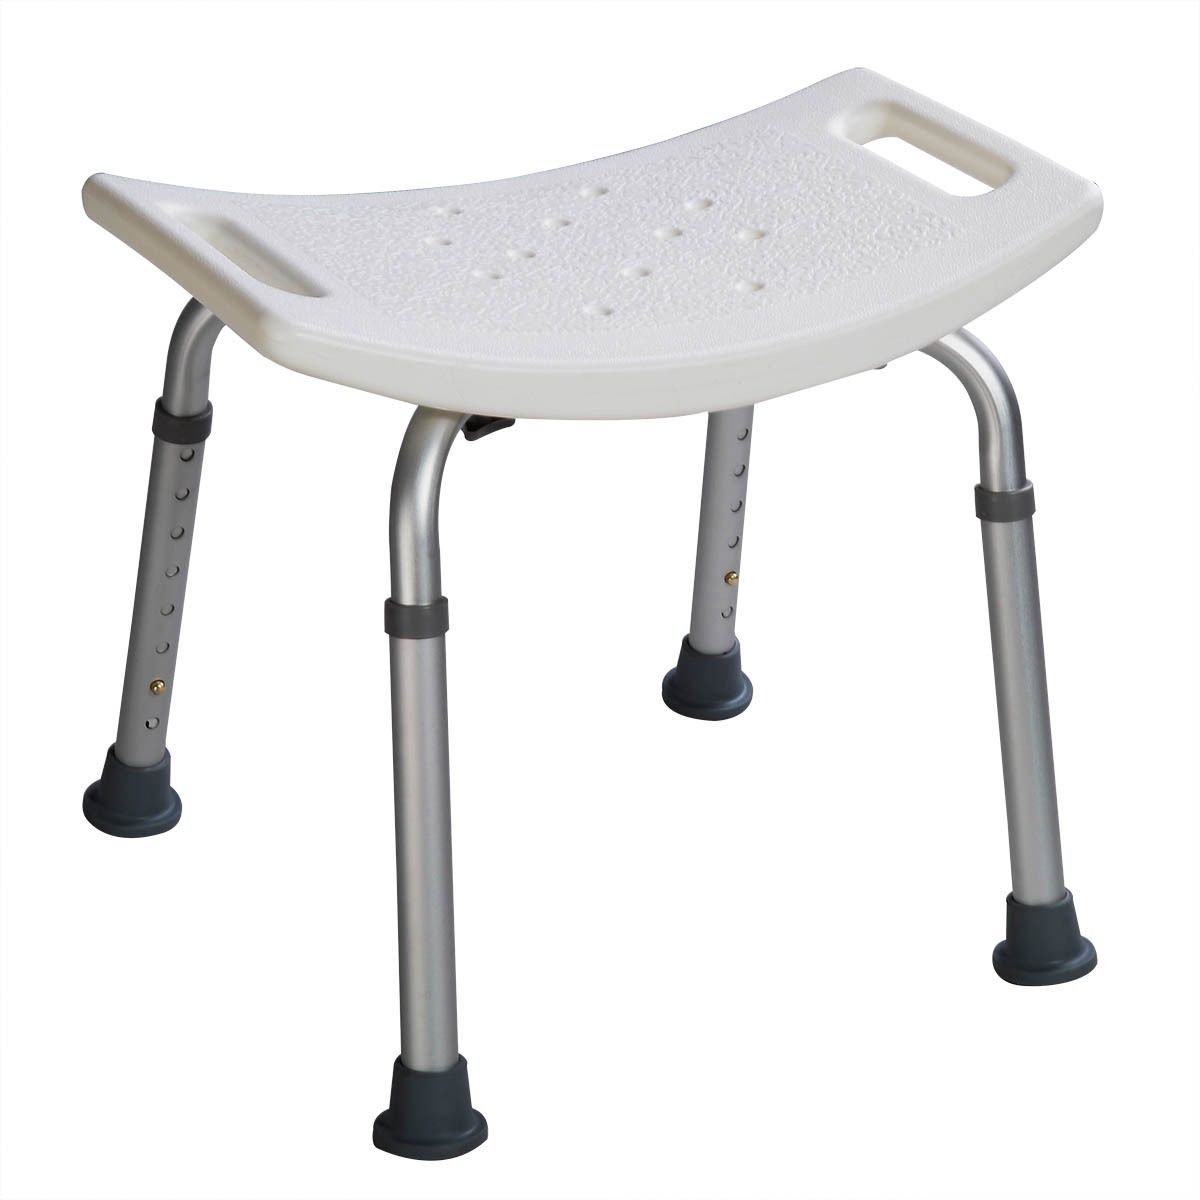 8 Height Adjustable Shower Chair Medical Bath Bench Bathtub Stool ...